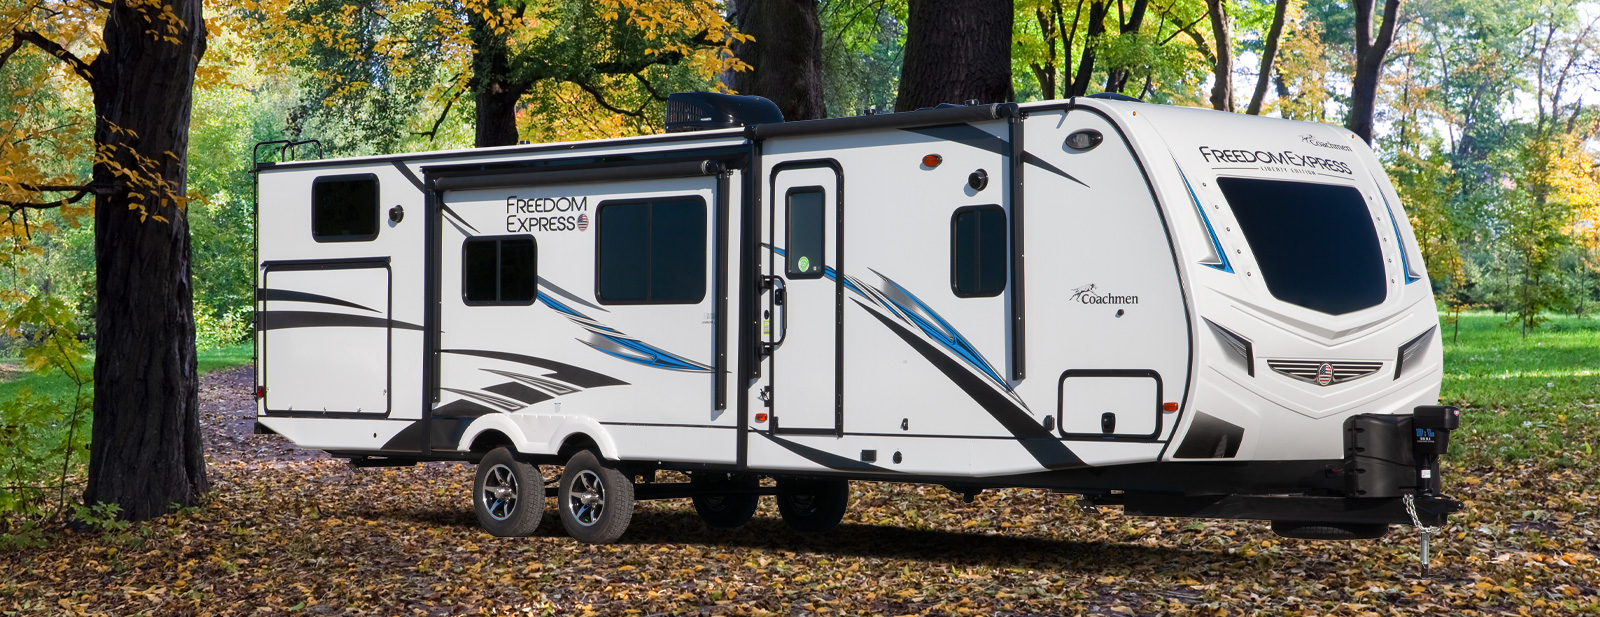 Freedom Express Liberty Edition Travel Trailers By Coachmen Rv